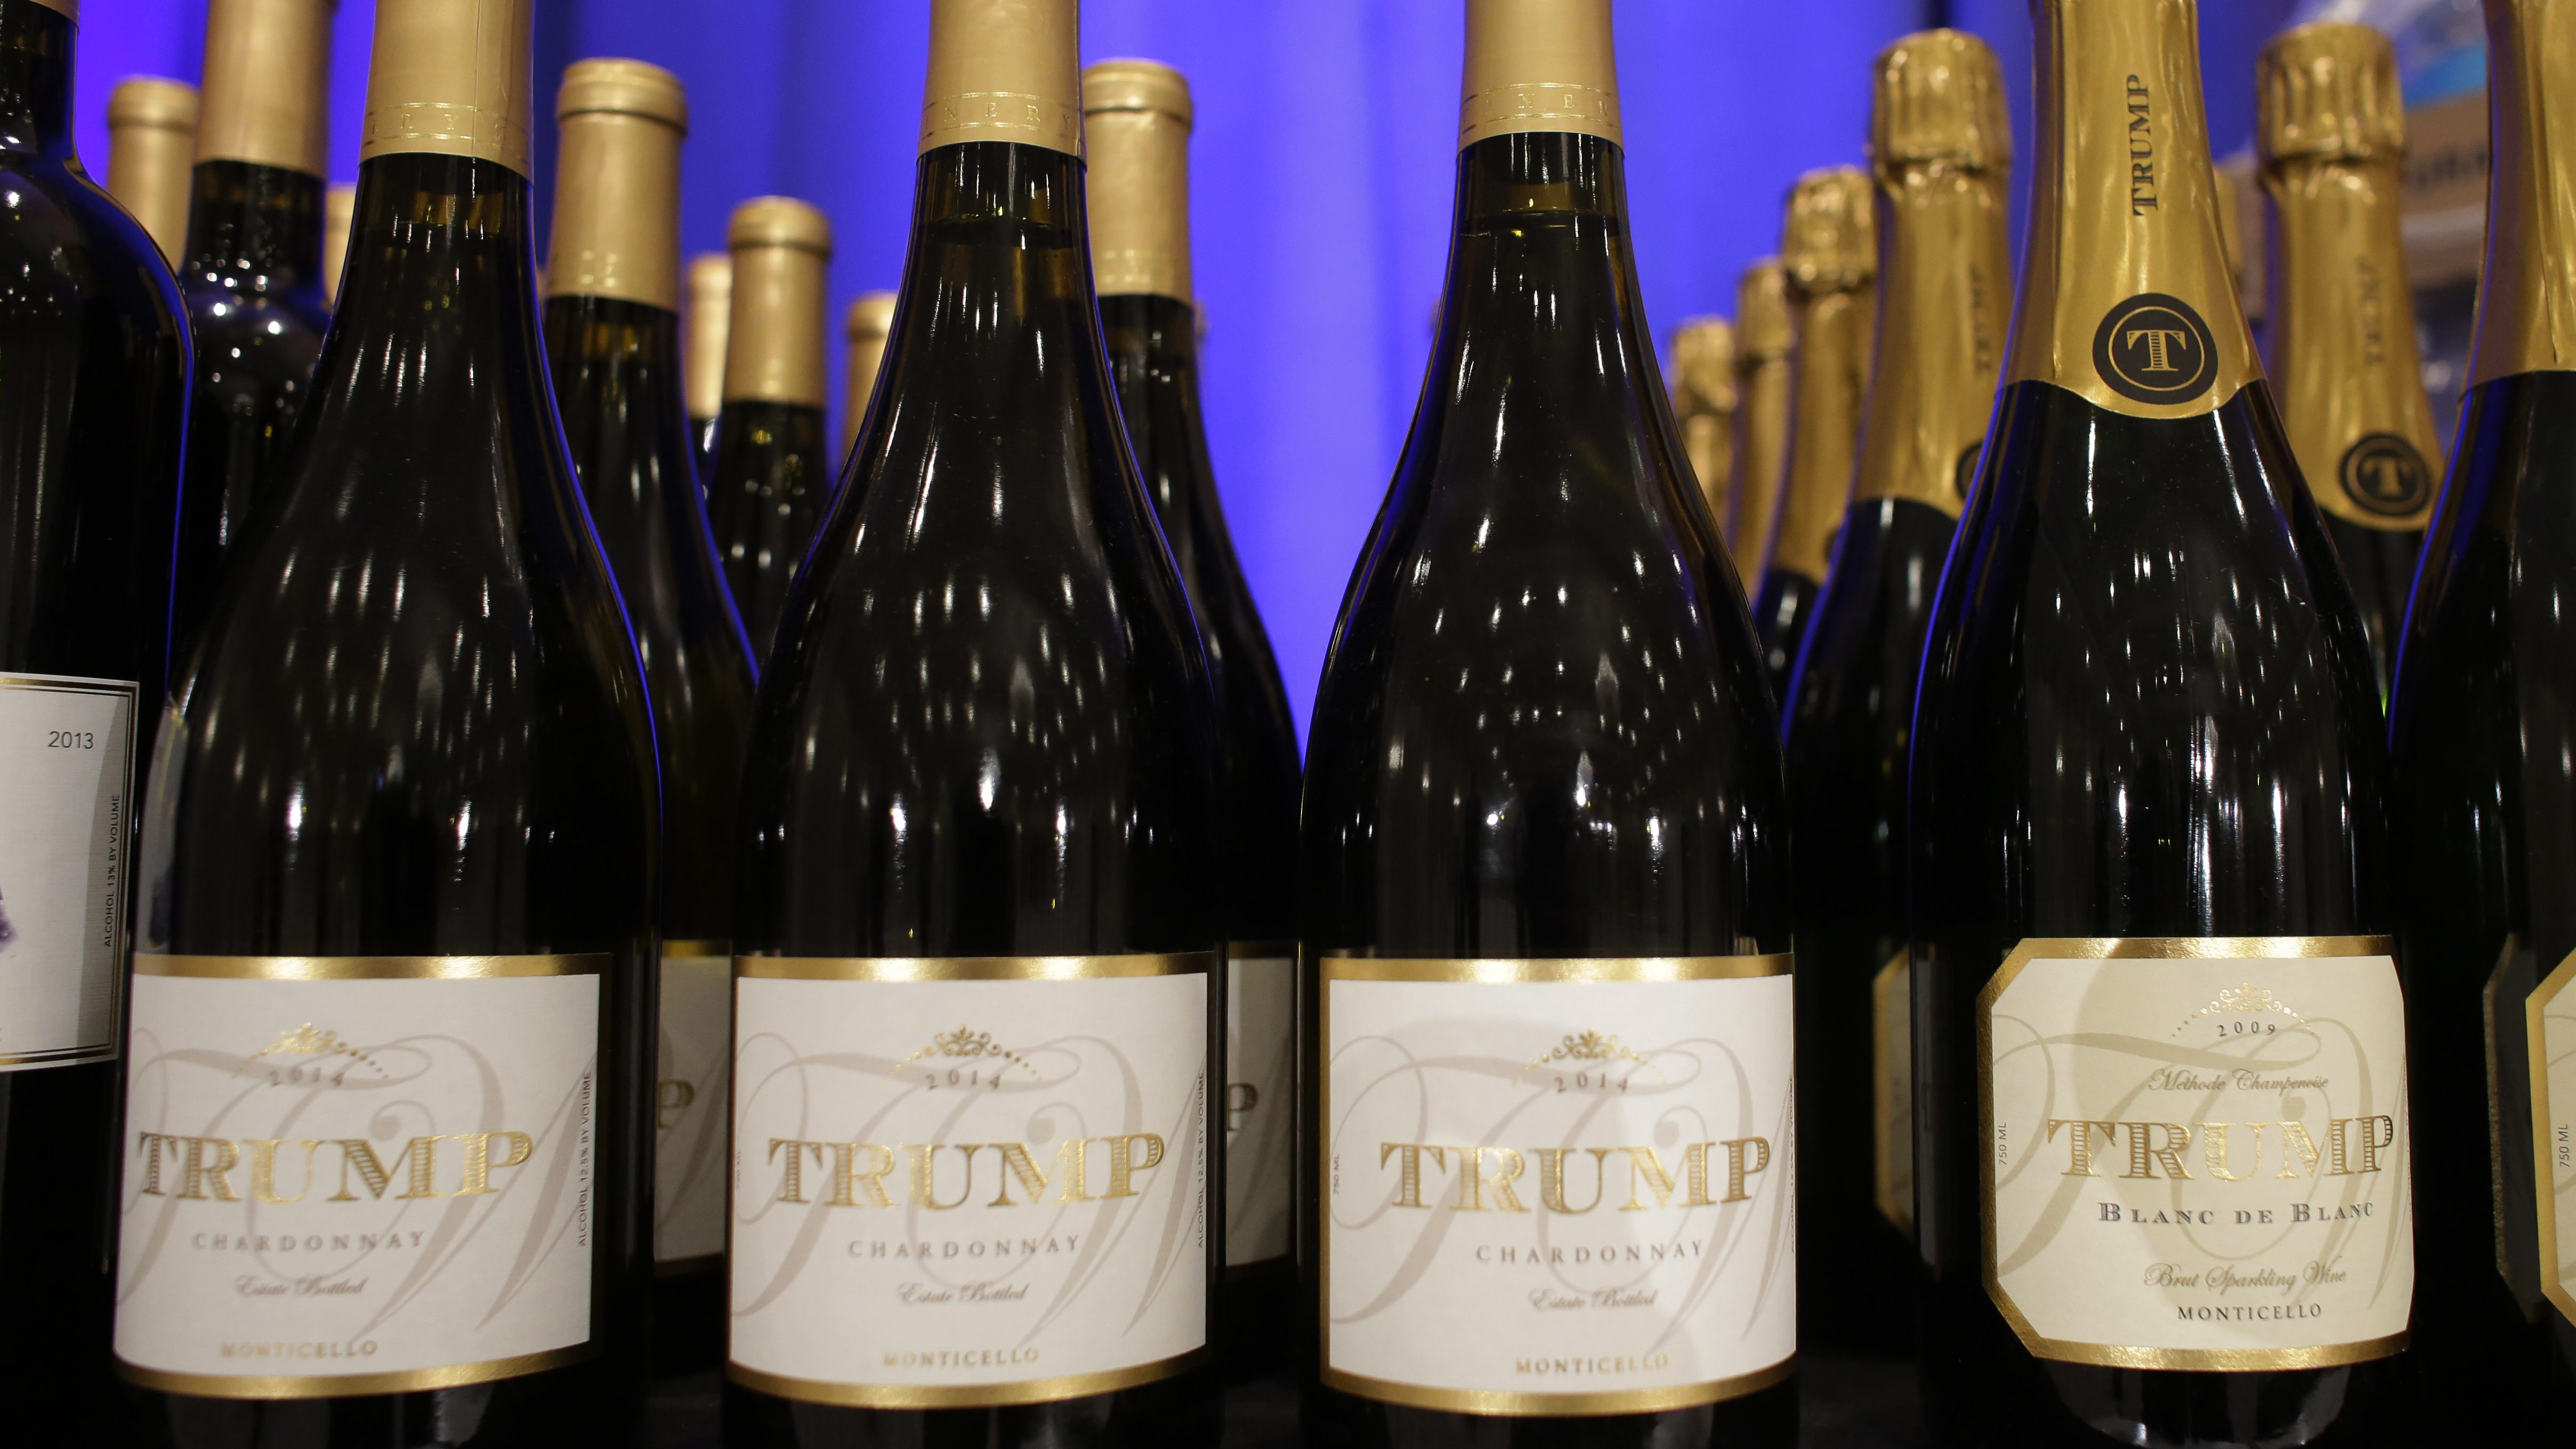 Trump branded wine is displayed prior to a scheduled news conference by Republican presidential candidate Donald Trump, Tuesday, March 8, 2016, in Jupiter, Fla. Trump branded steaks, wine, and water were on display next to the stage at the Trump National Golf Club. (AP Photo/Lynne Sladky)